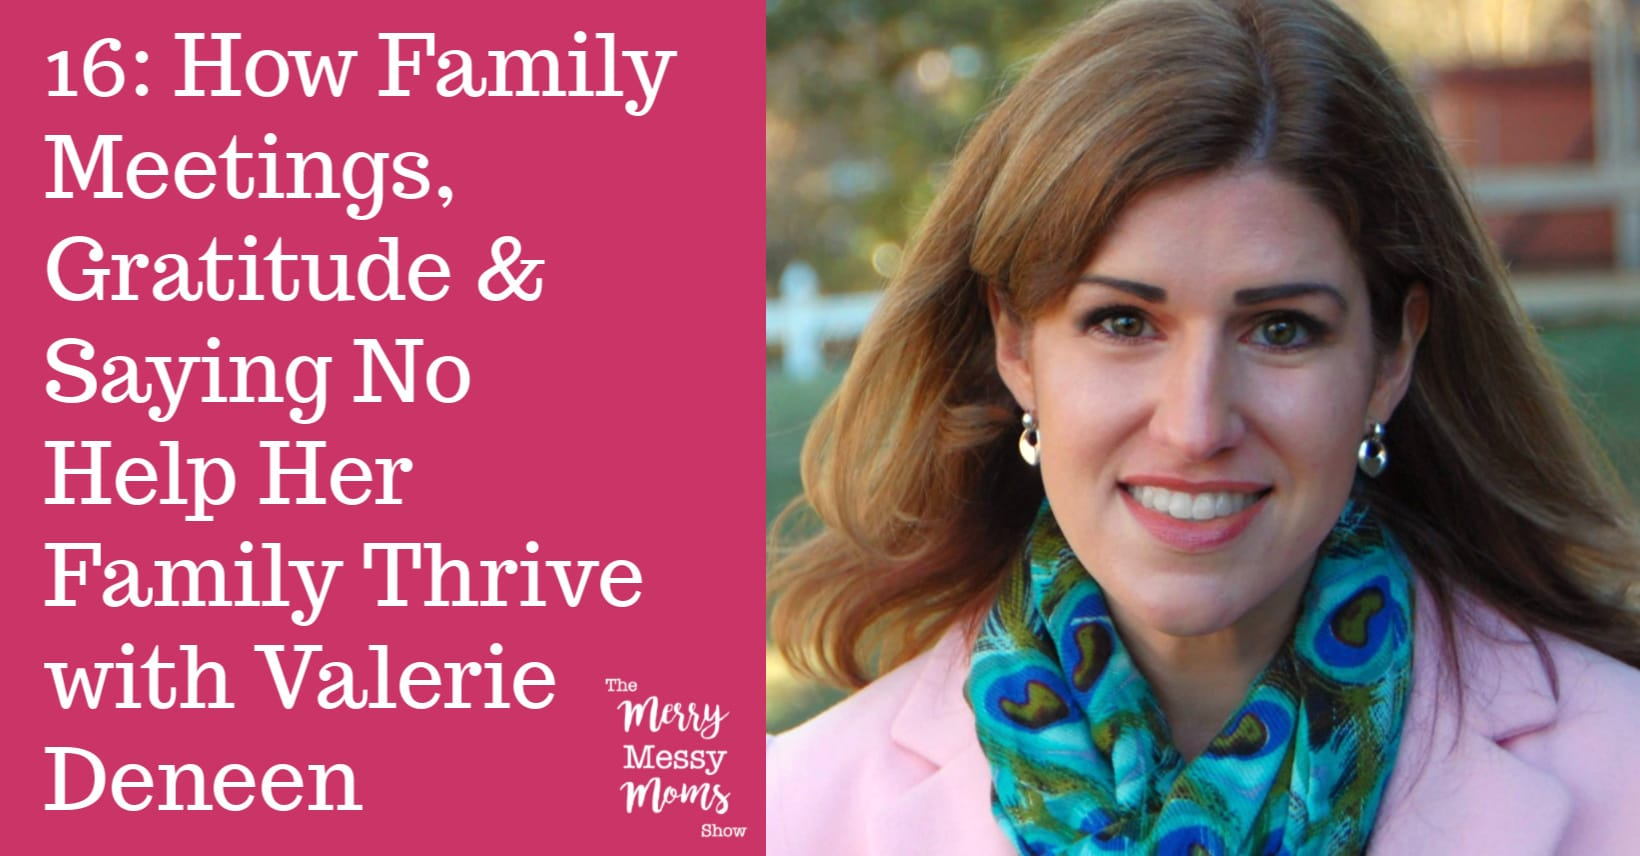 How Family Meetings, Gratitude and Saying No Help Her Family Thrive with Valerie Deneen || On The Merry Messy Moms Show Podcast